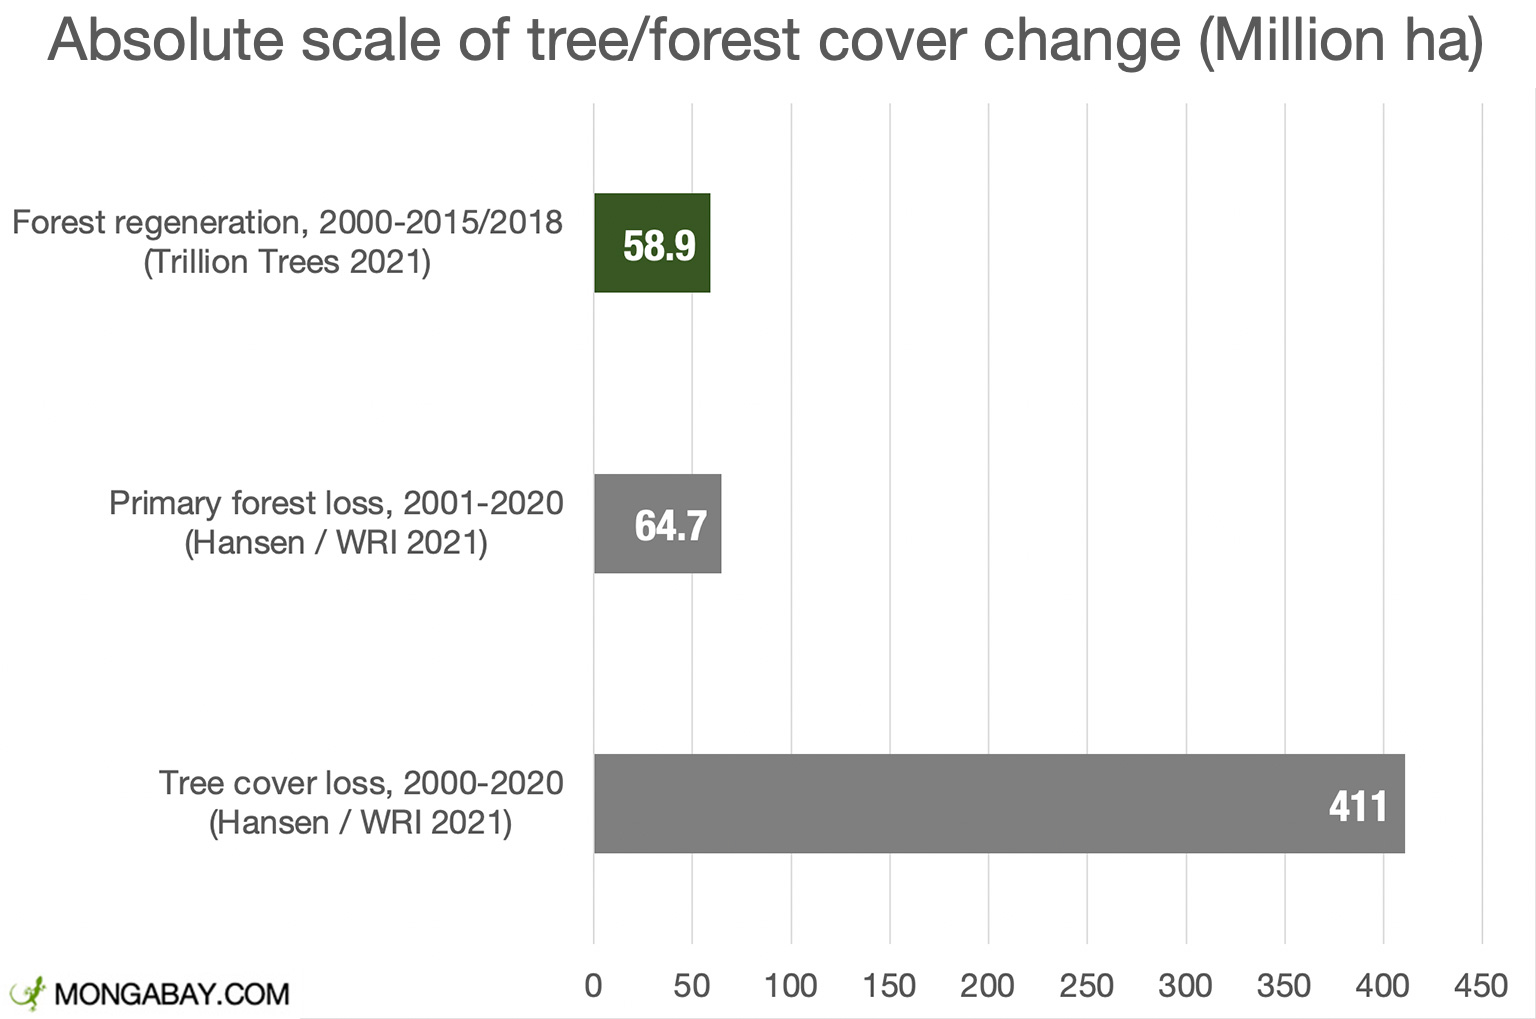 Green represents forest/tree cover gain, while gray represents loss. Primary forest loss averaged 3.4 million hectares per year from 2001-2020 according to Global Forest Watch, while forest regeneration averaged 3.3-3.9 million hectares a year according to the Trillion Trees analysis.